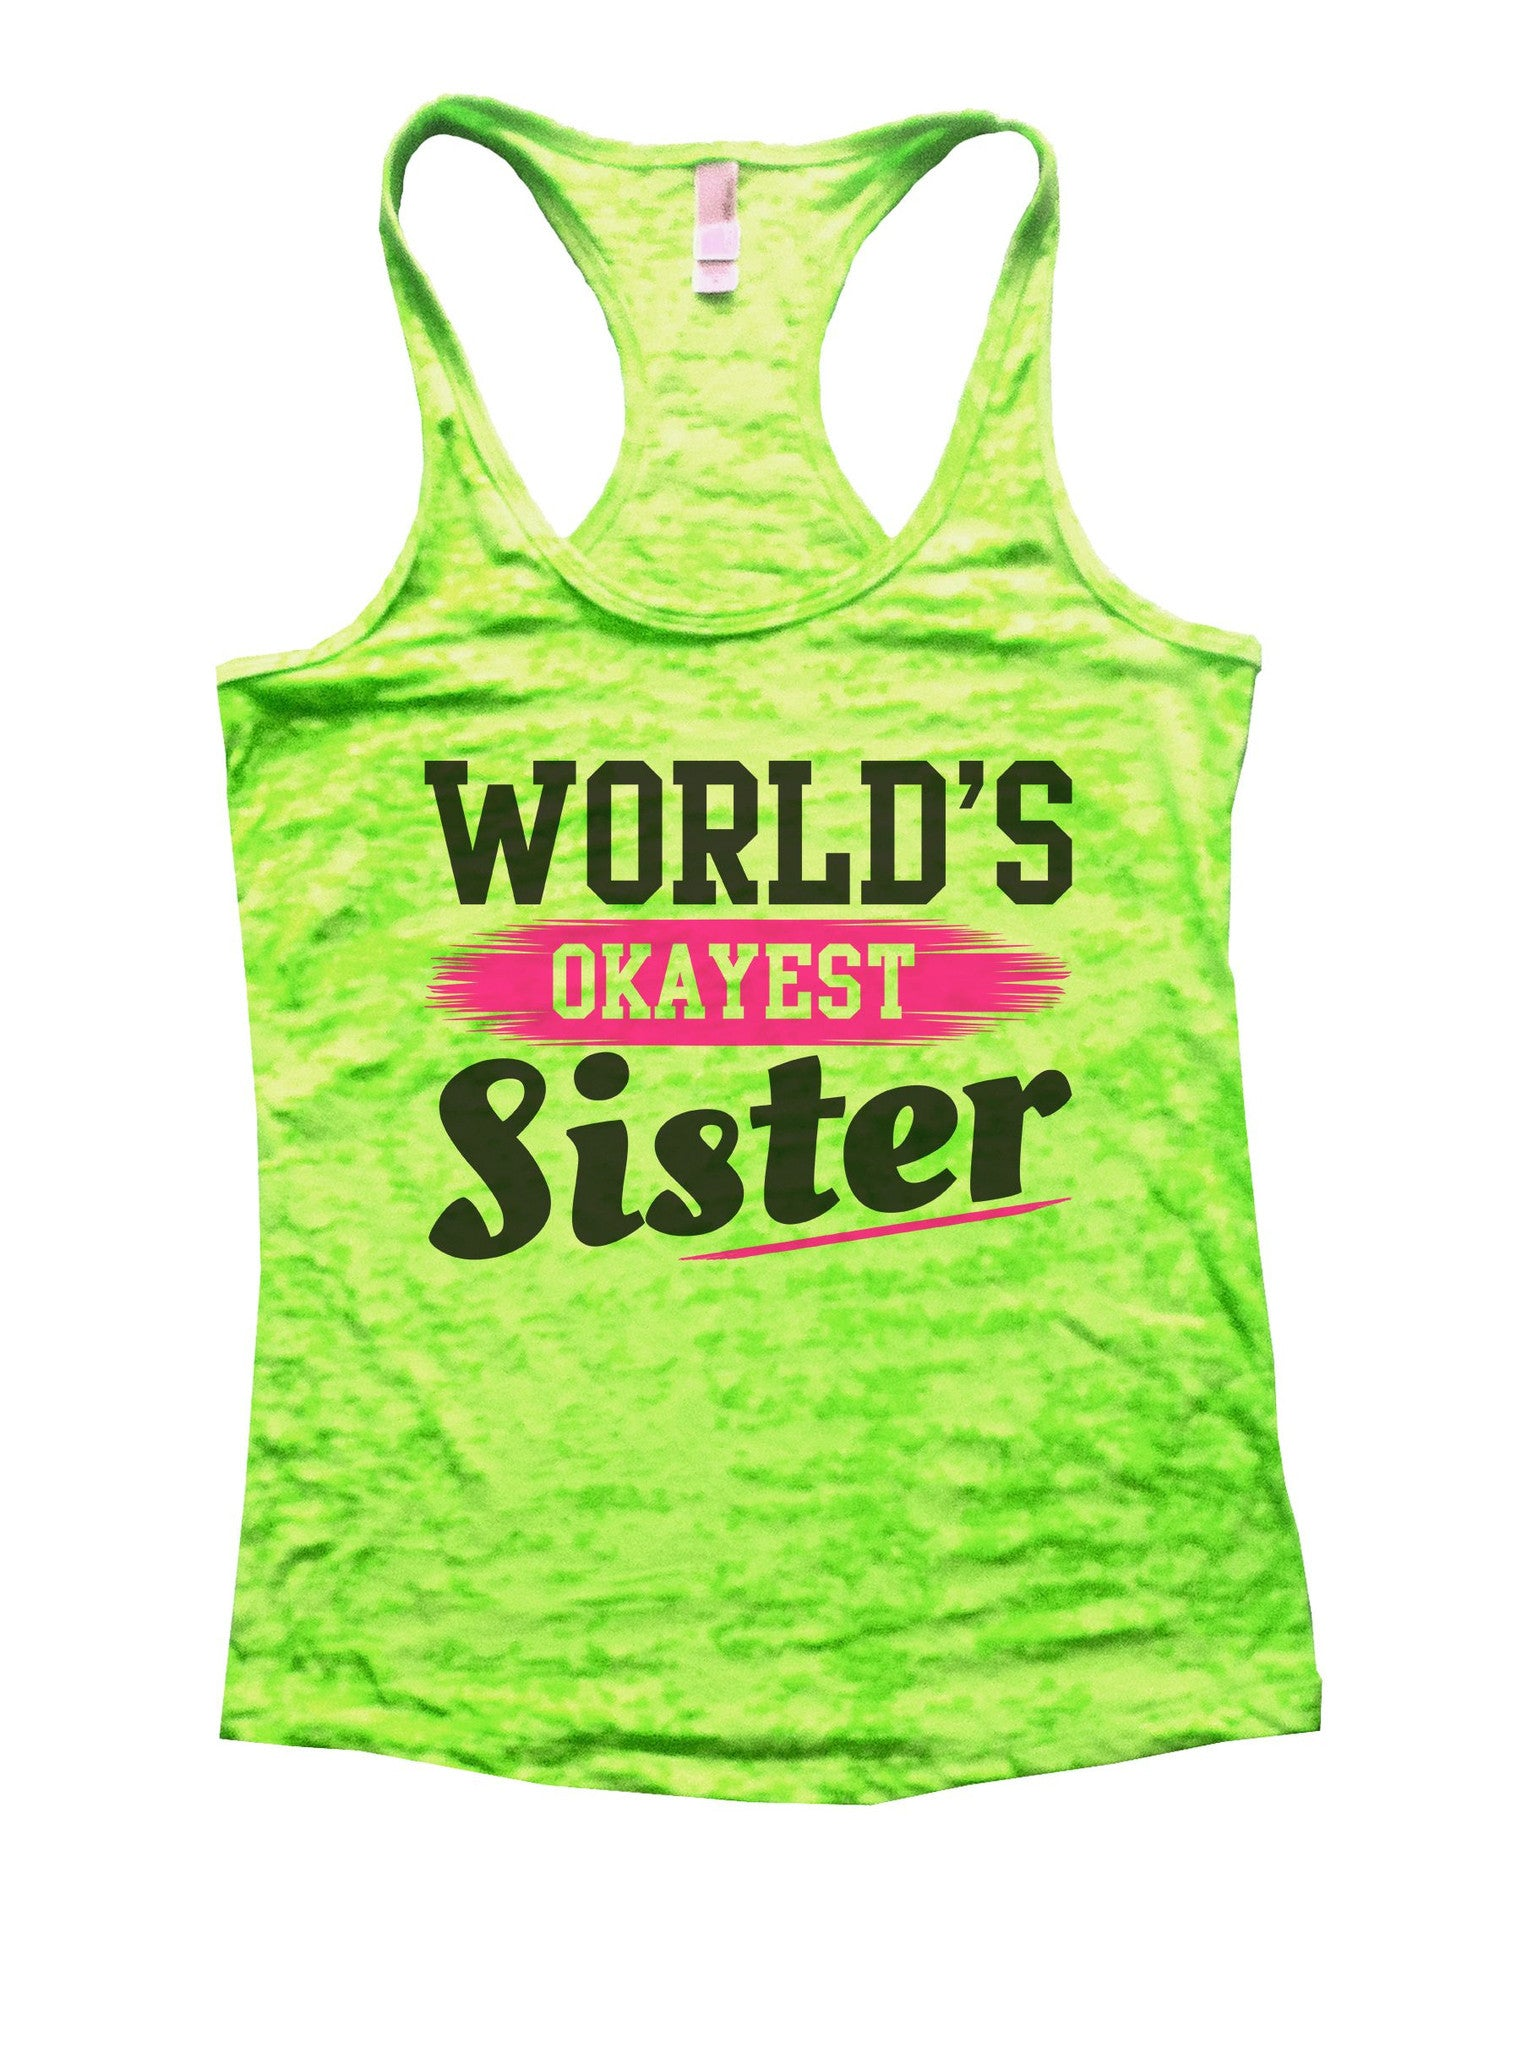 World's Okayest Sister Burnout Tank Top By BurnoutTankTops.com - 1033 - Funny Shirts Tank Tops Burnouts and Triblends  - 1